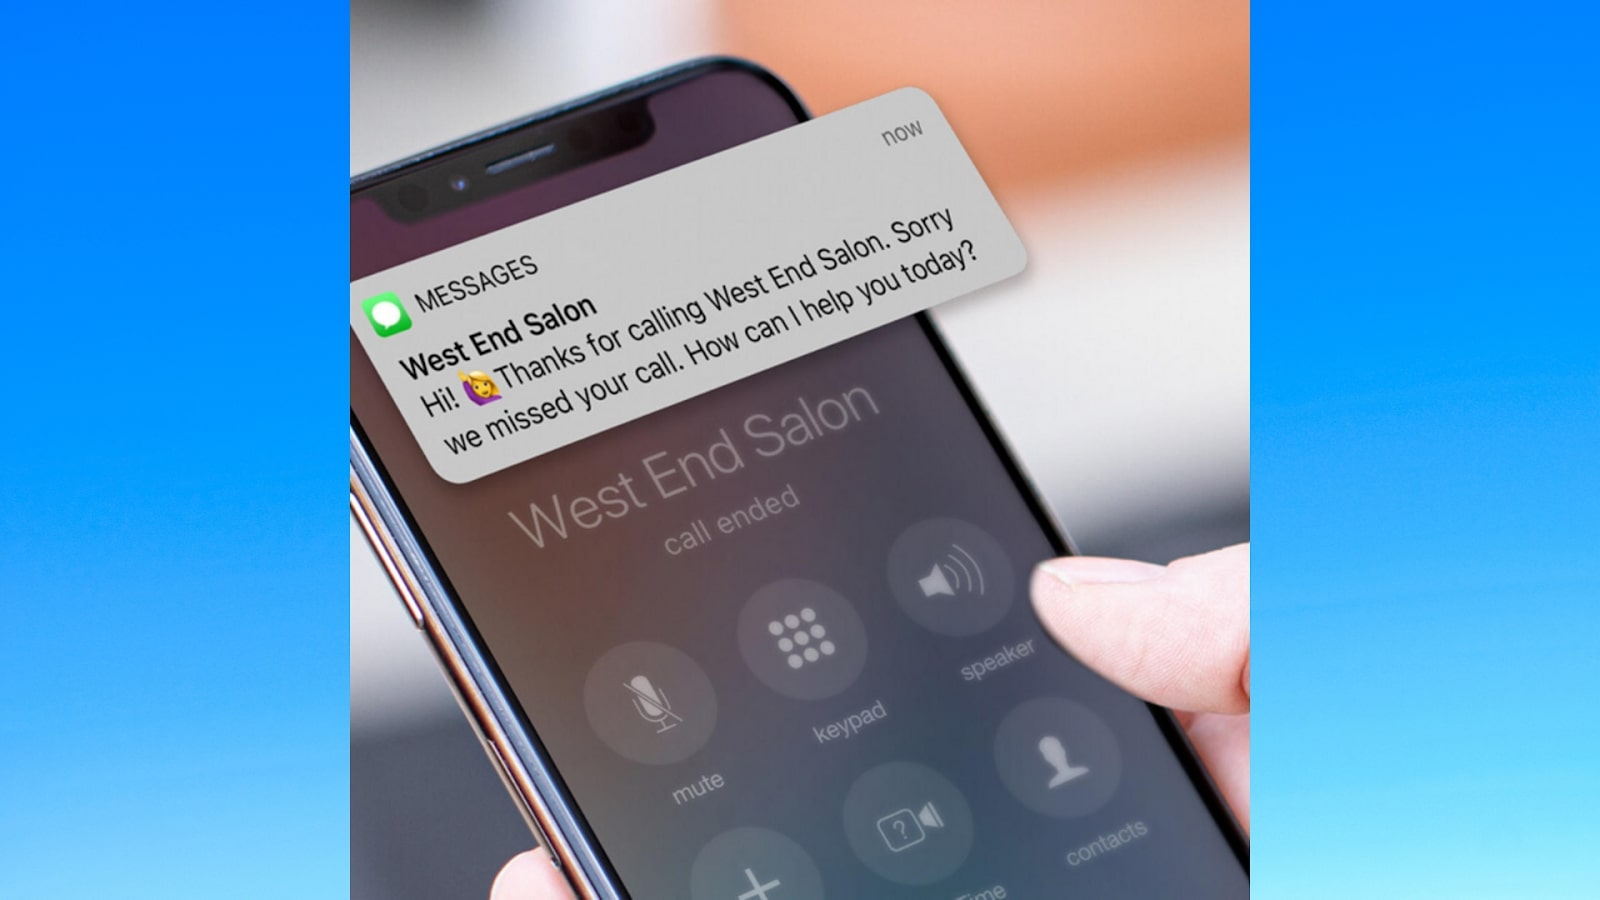 Booker POS messaging system on an iphone